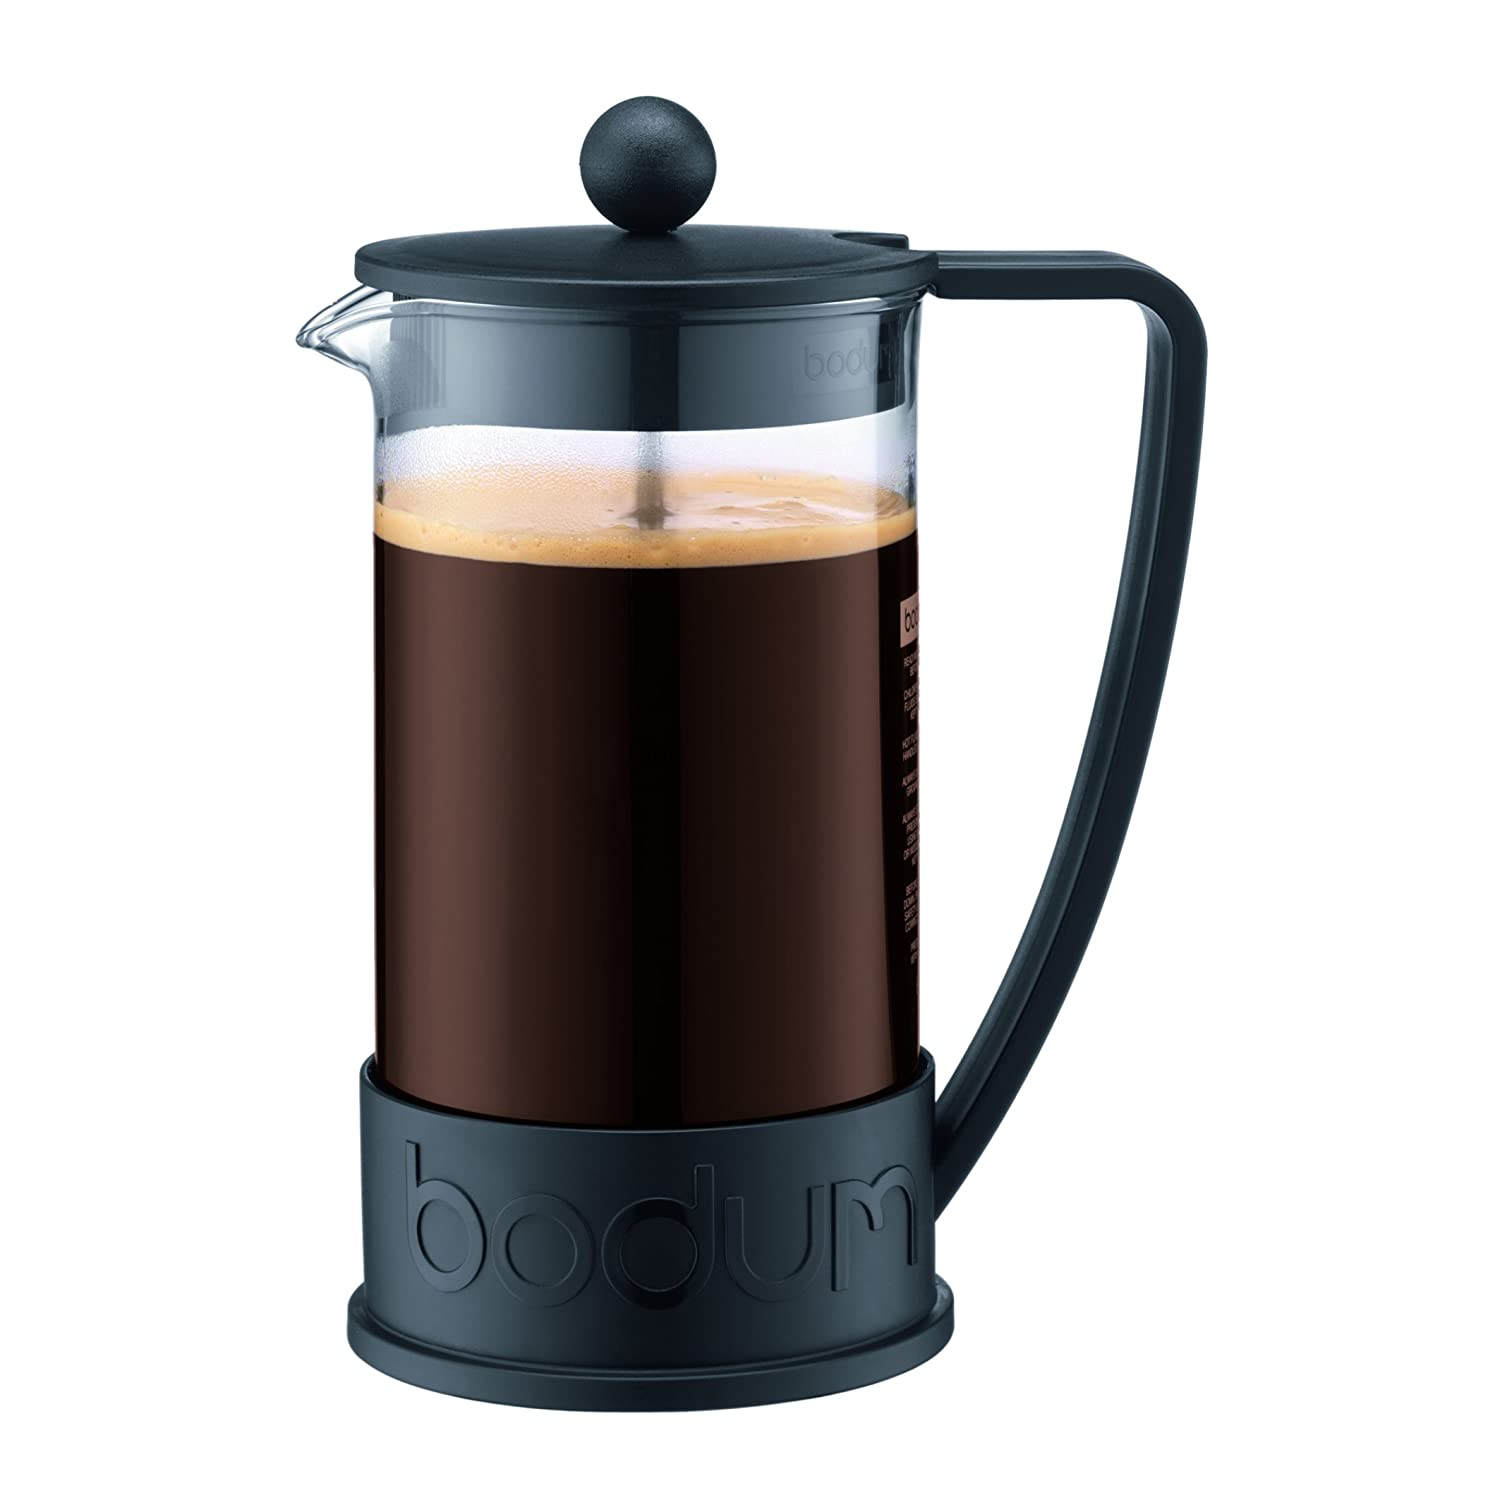 Bodum 10948-01BUS Brazil French Press Coffee and Tea Maker 12 Ounce Black